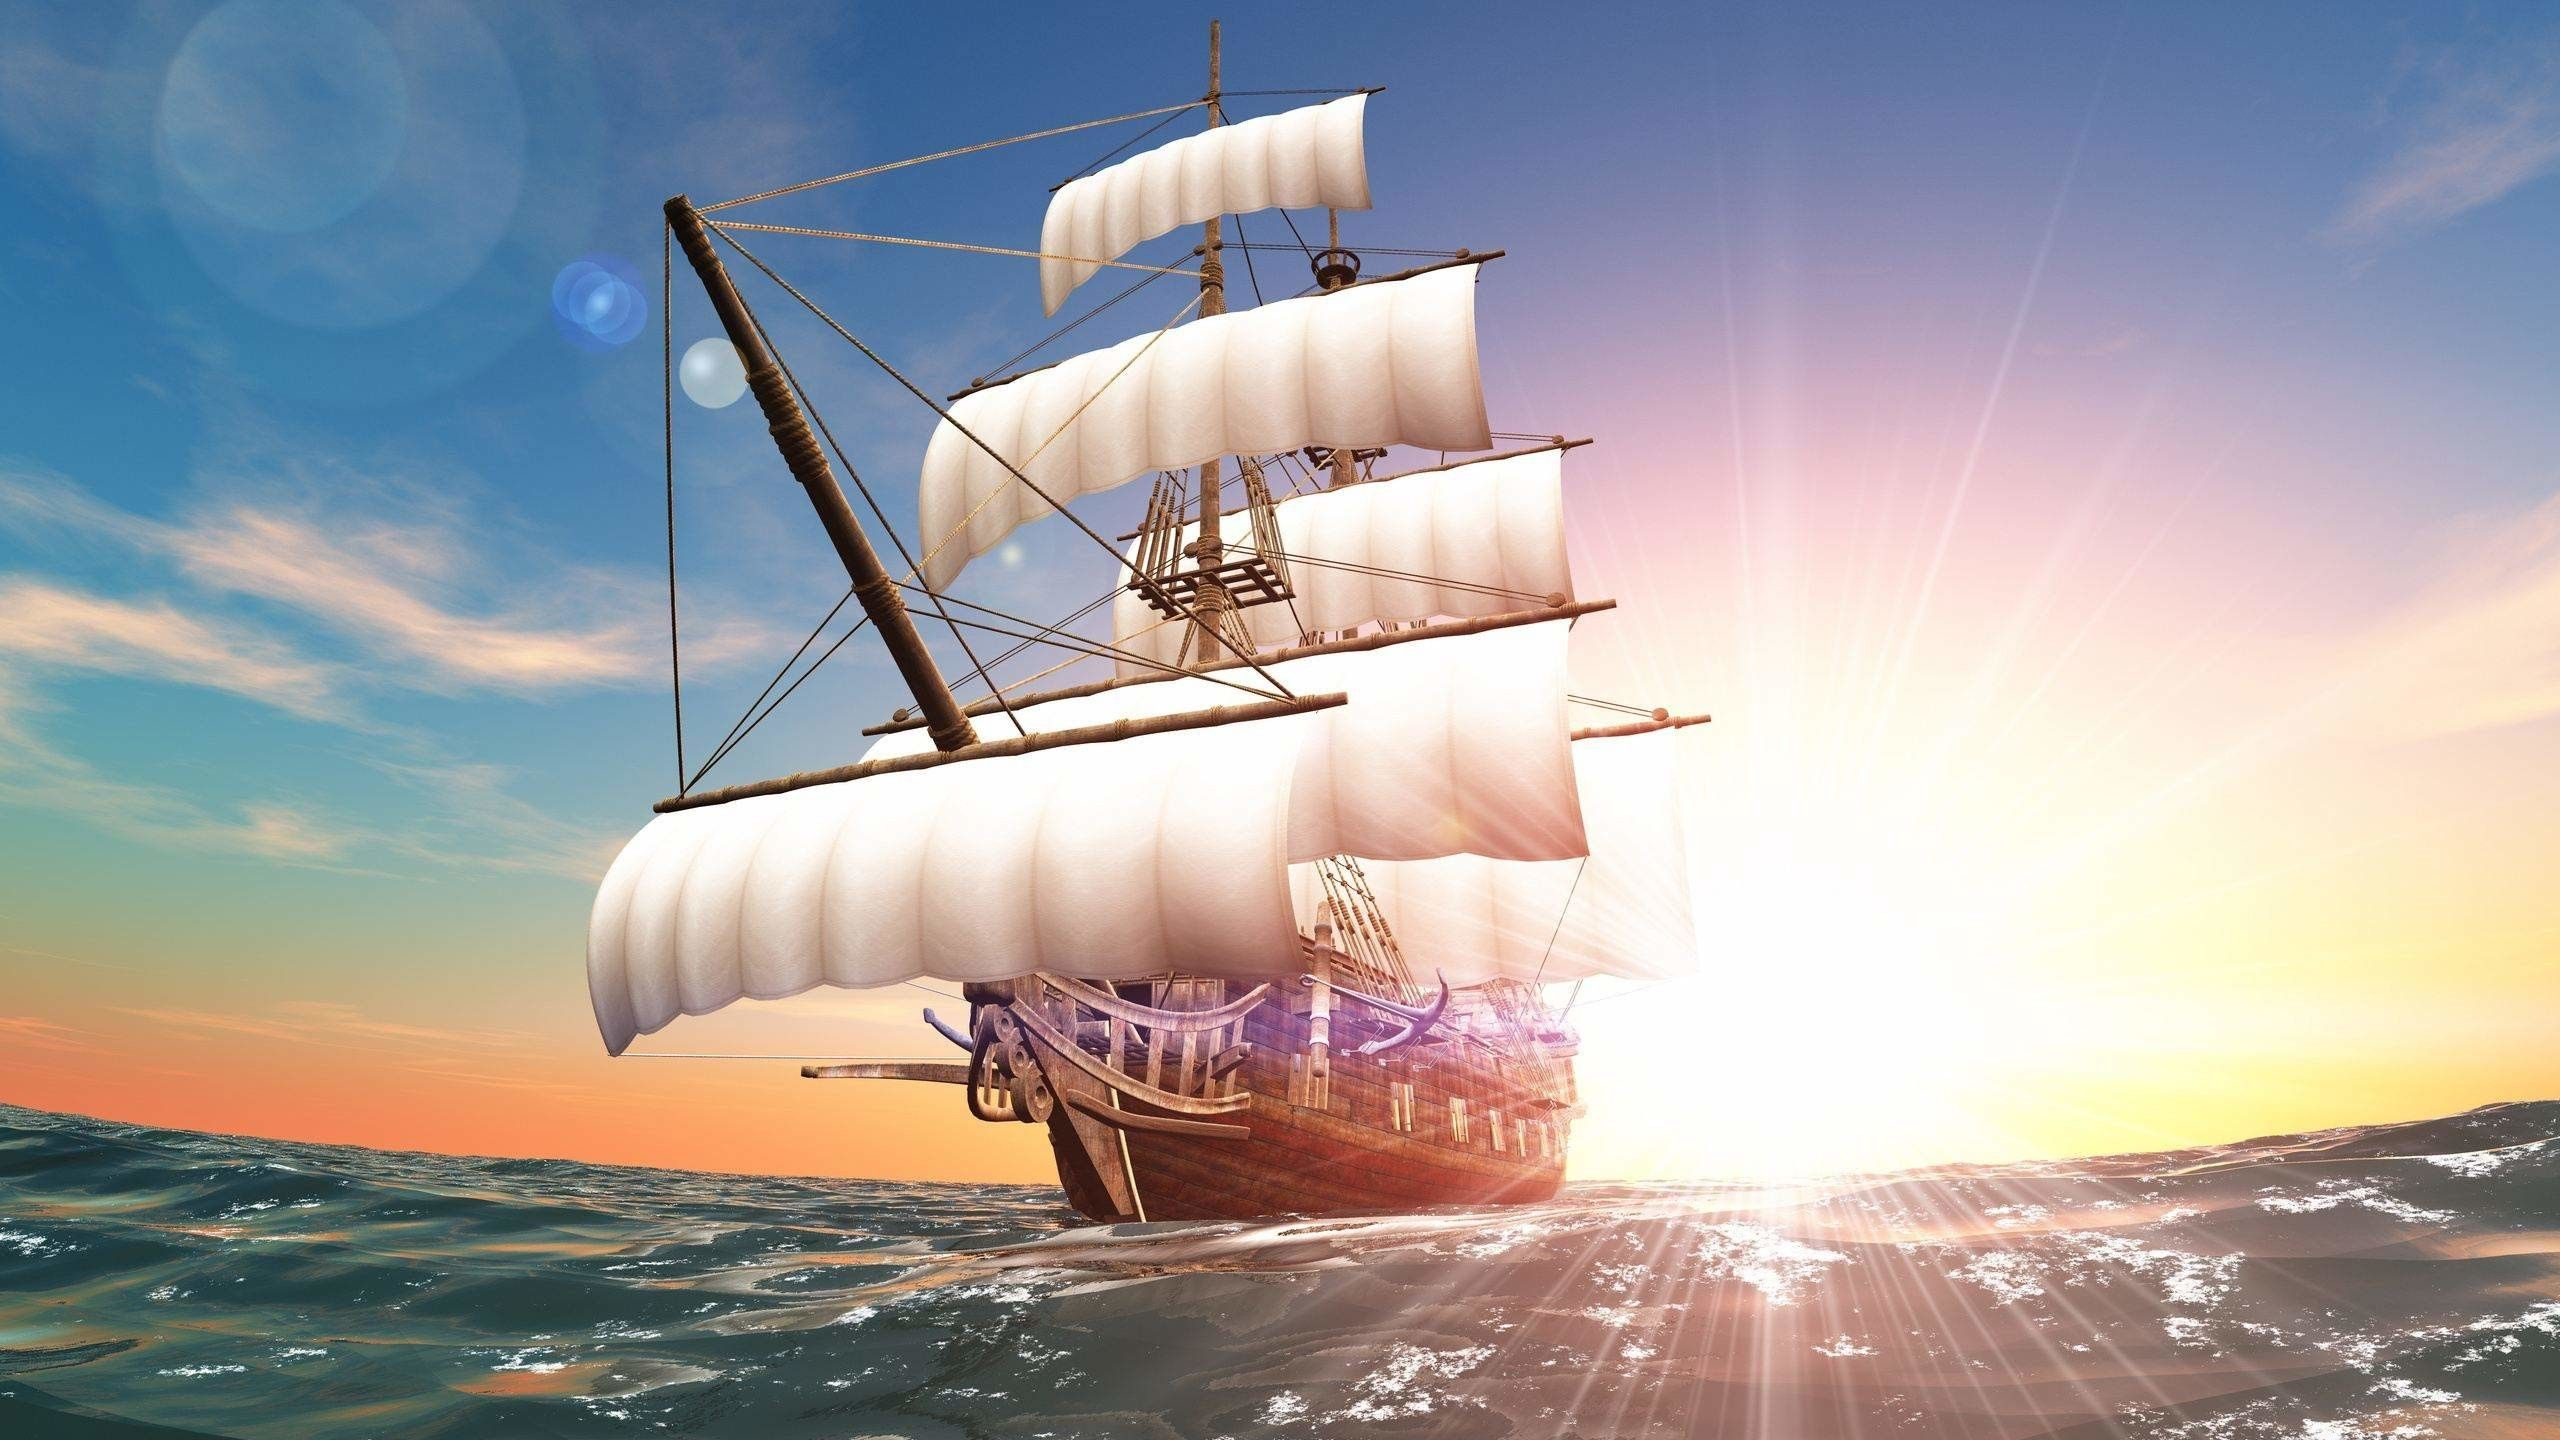 Ship Wallpapers Top Free Ship Backgrounds Wallpaperaccess